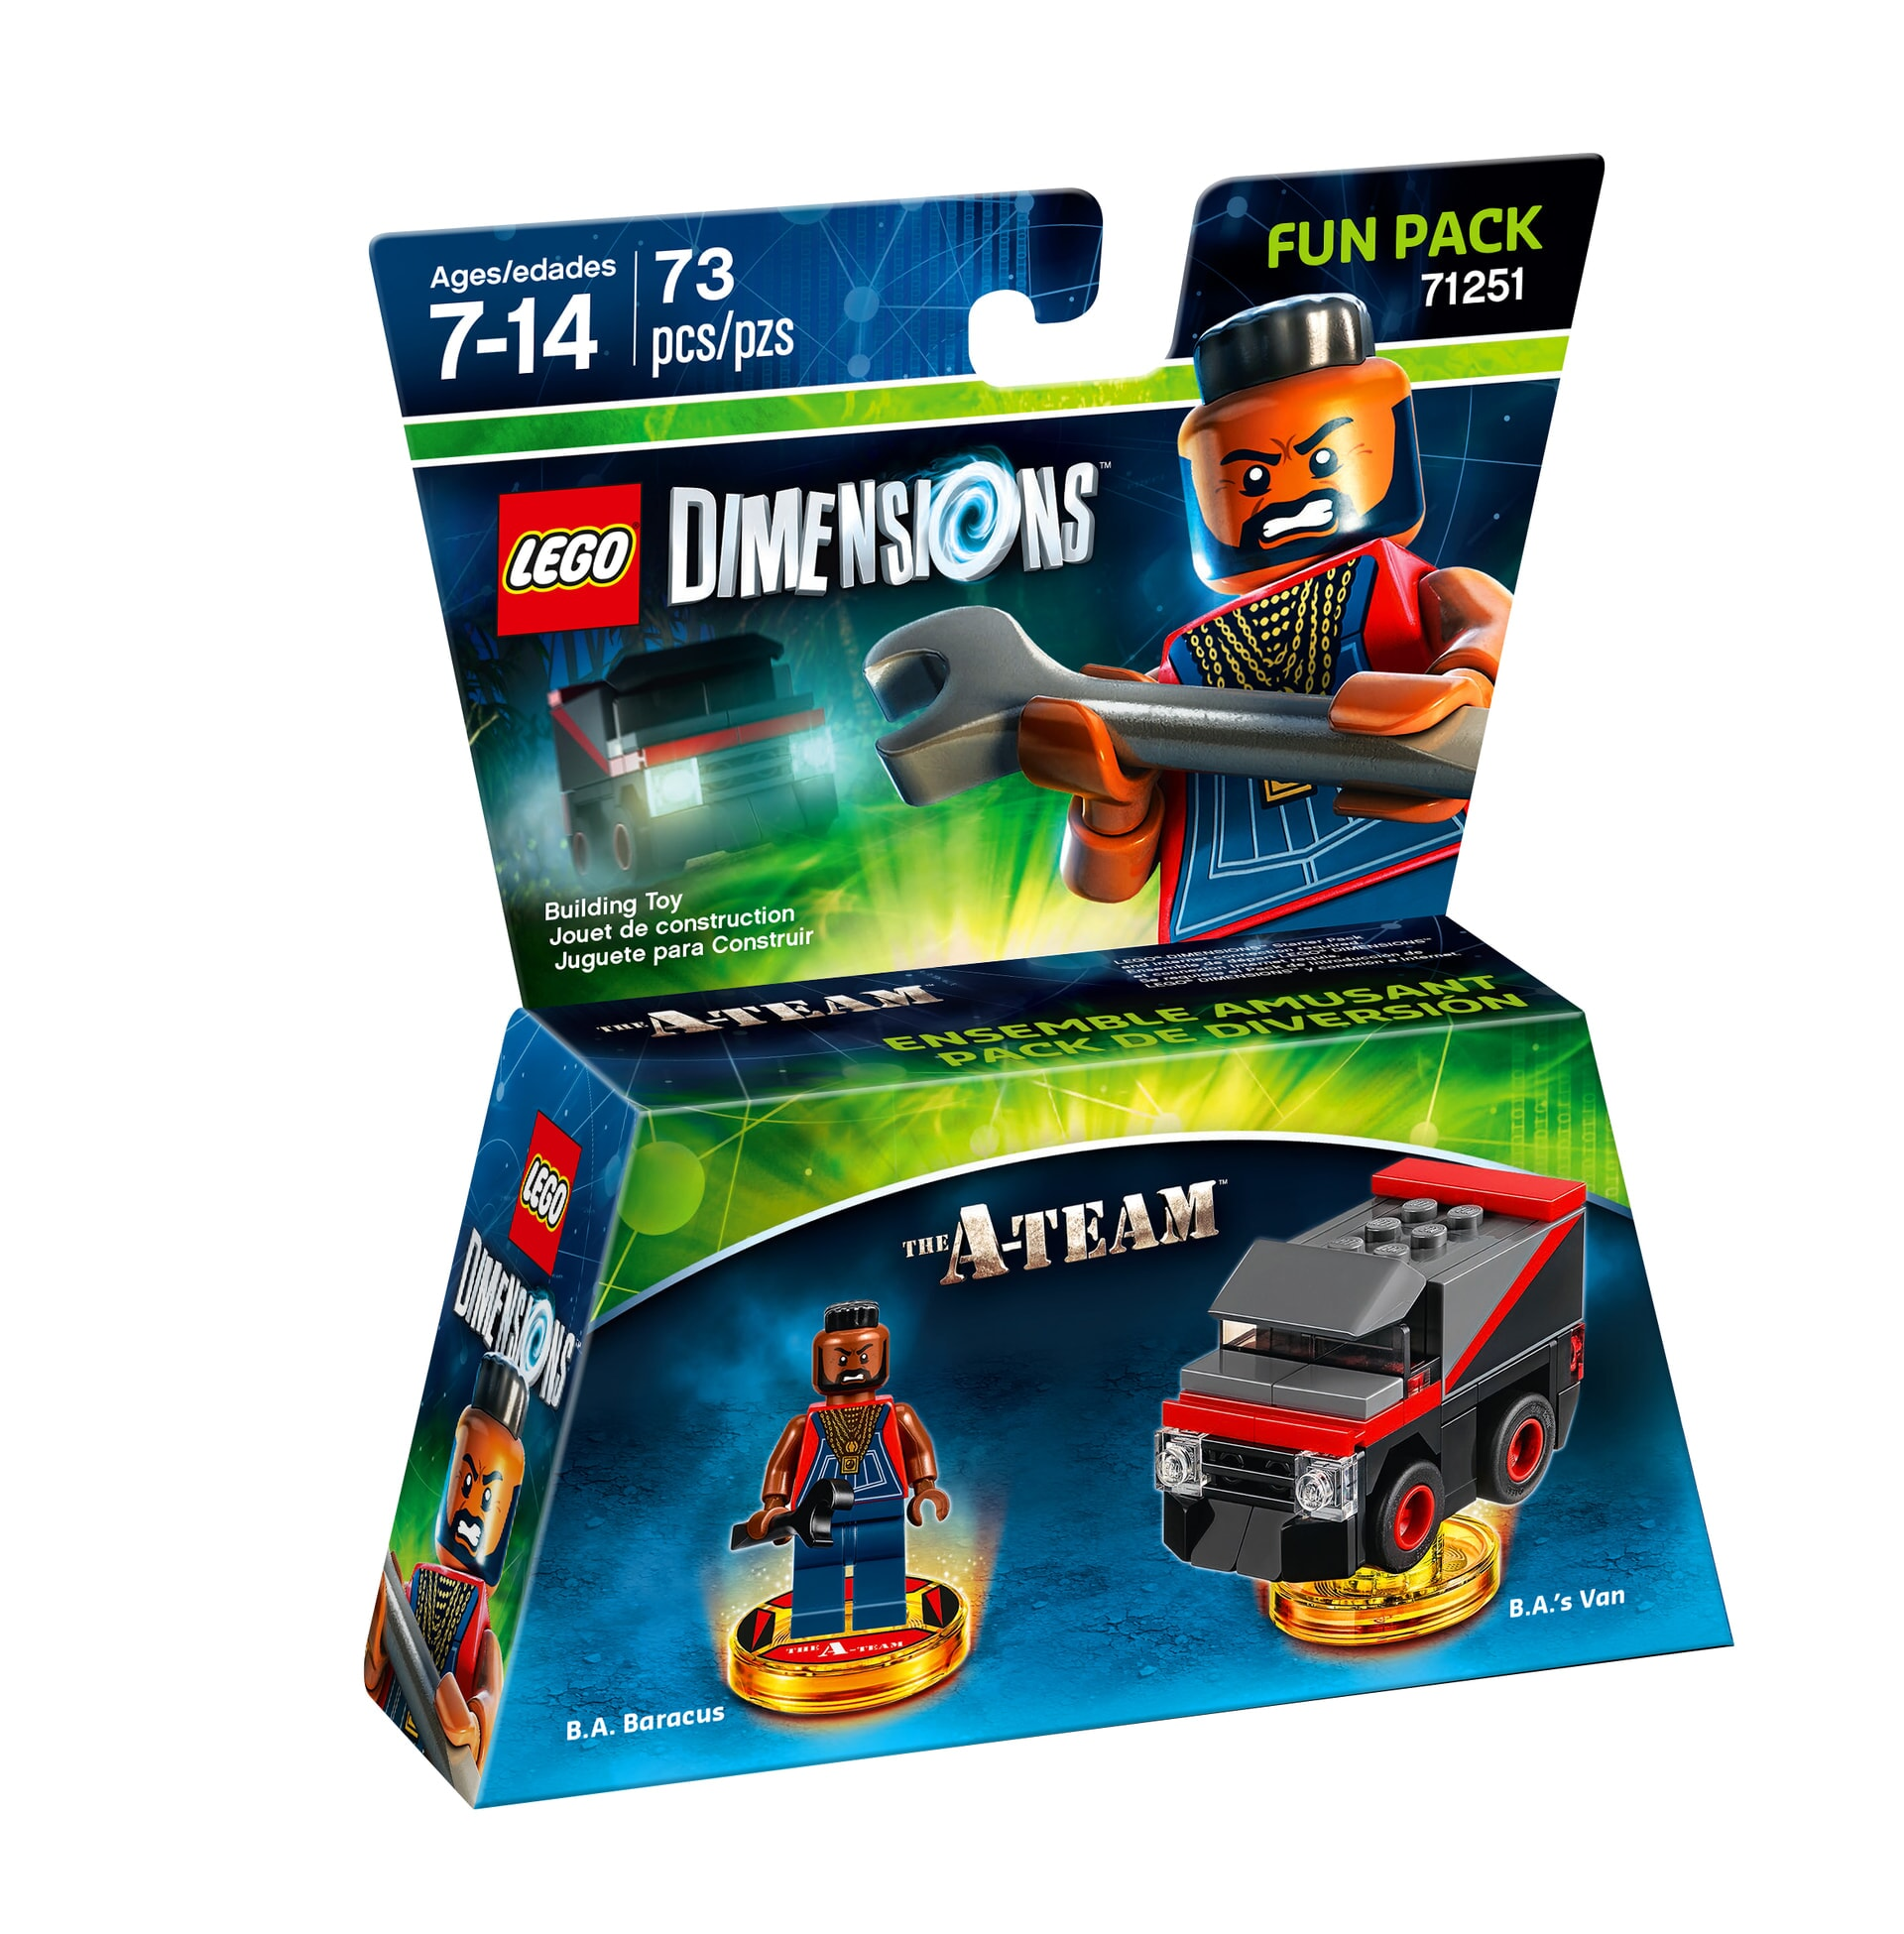 LEGO Dimensions Expansion Pack: A-Team